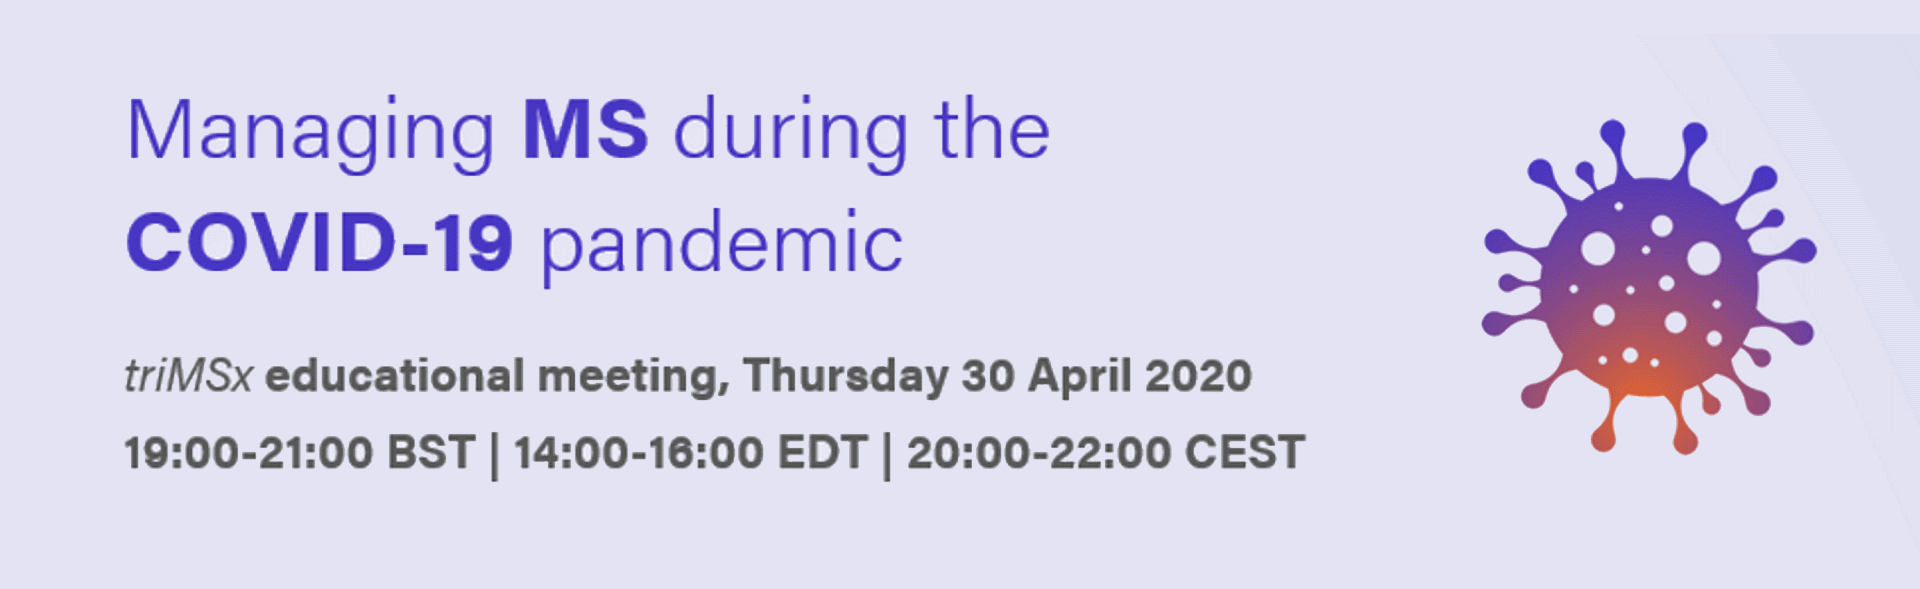 Webinar: Managing MS during the COVID-19 pandemic